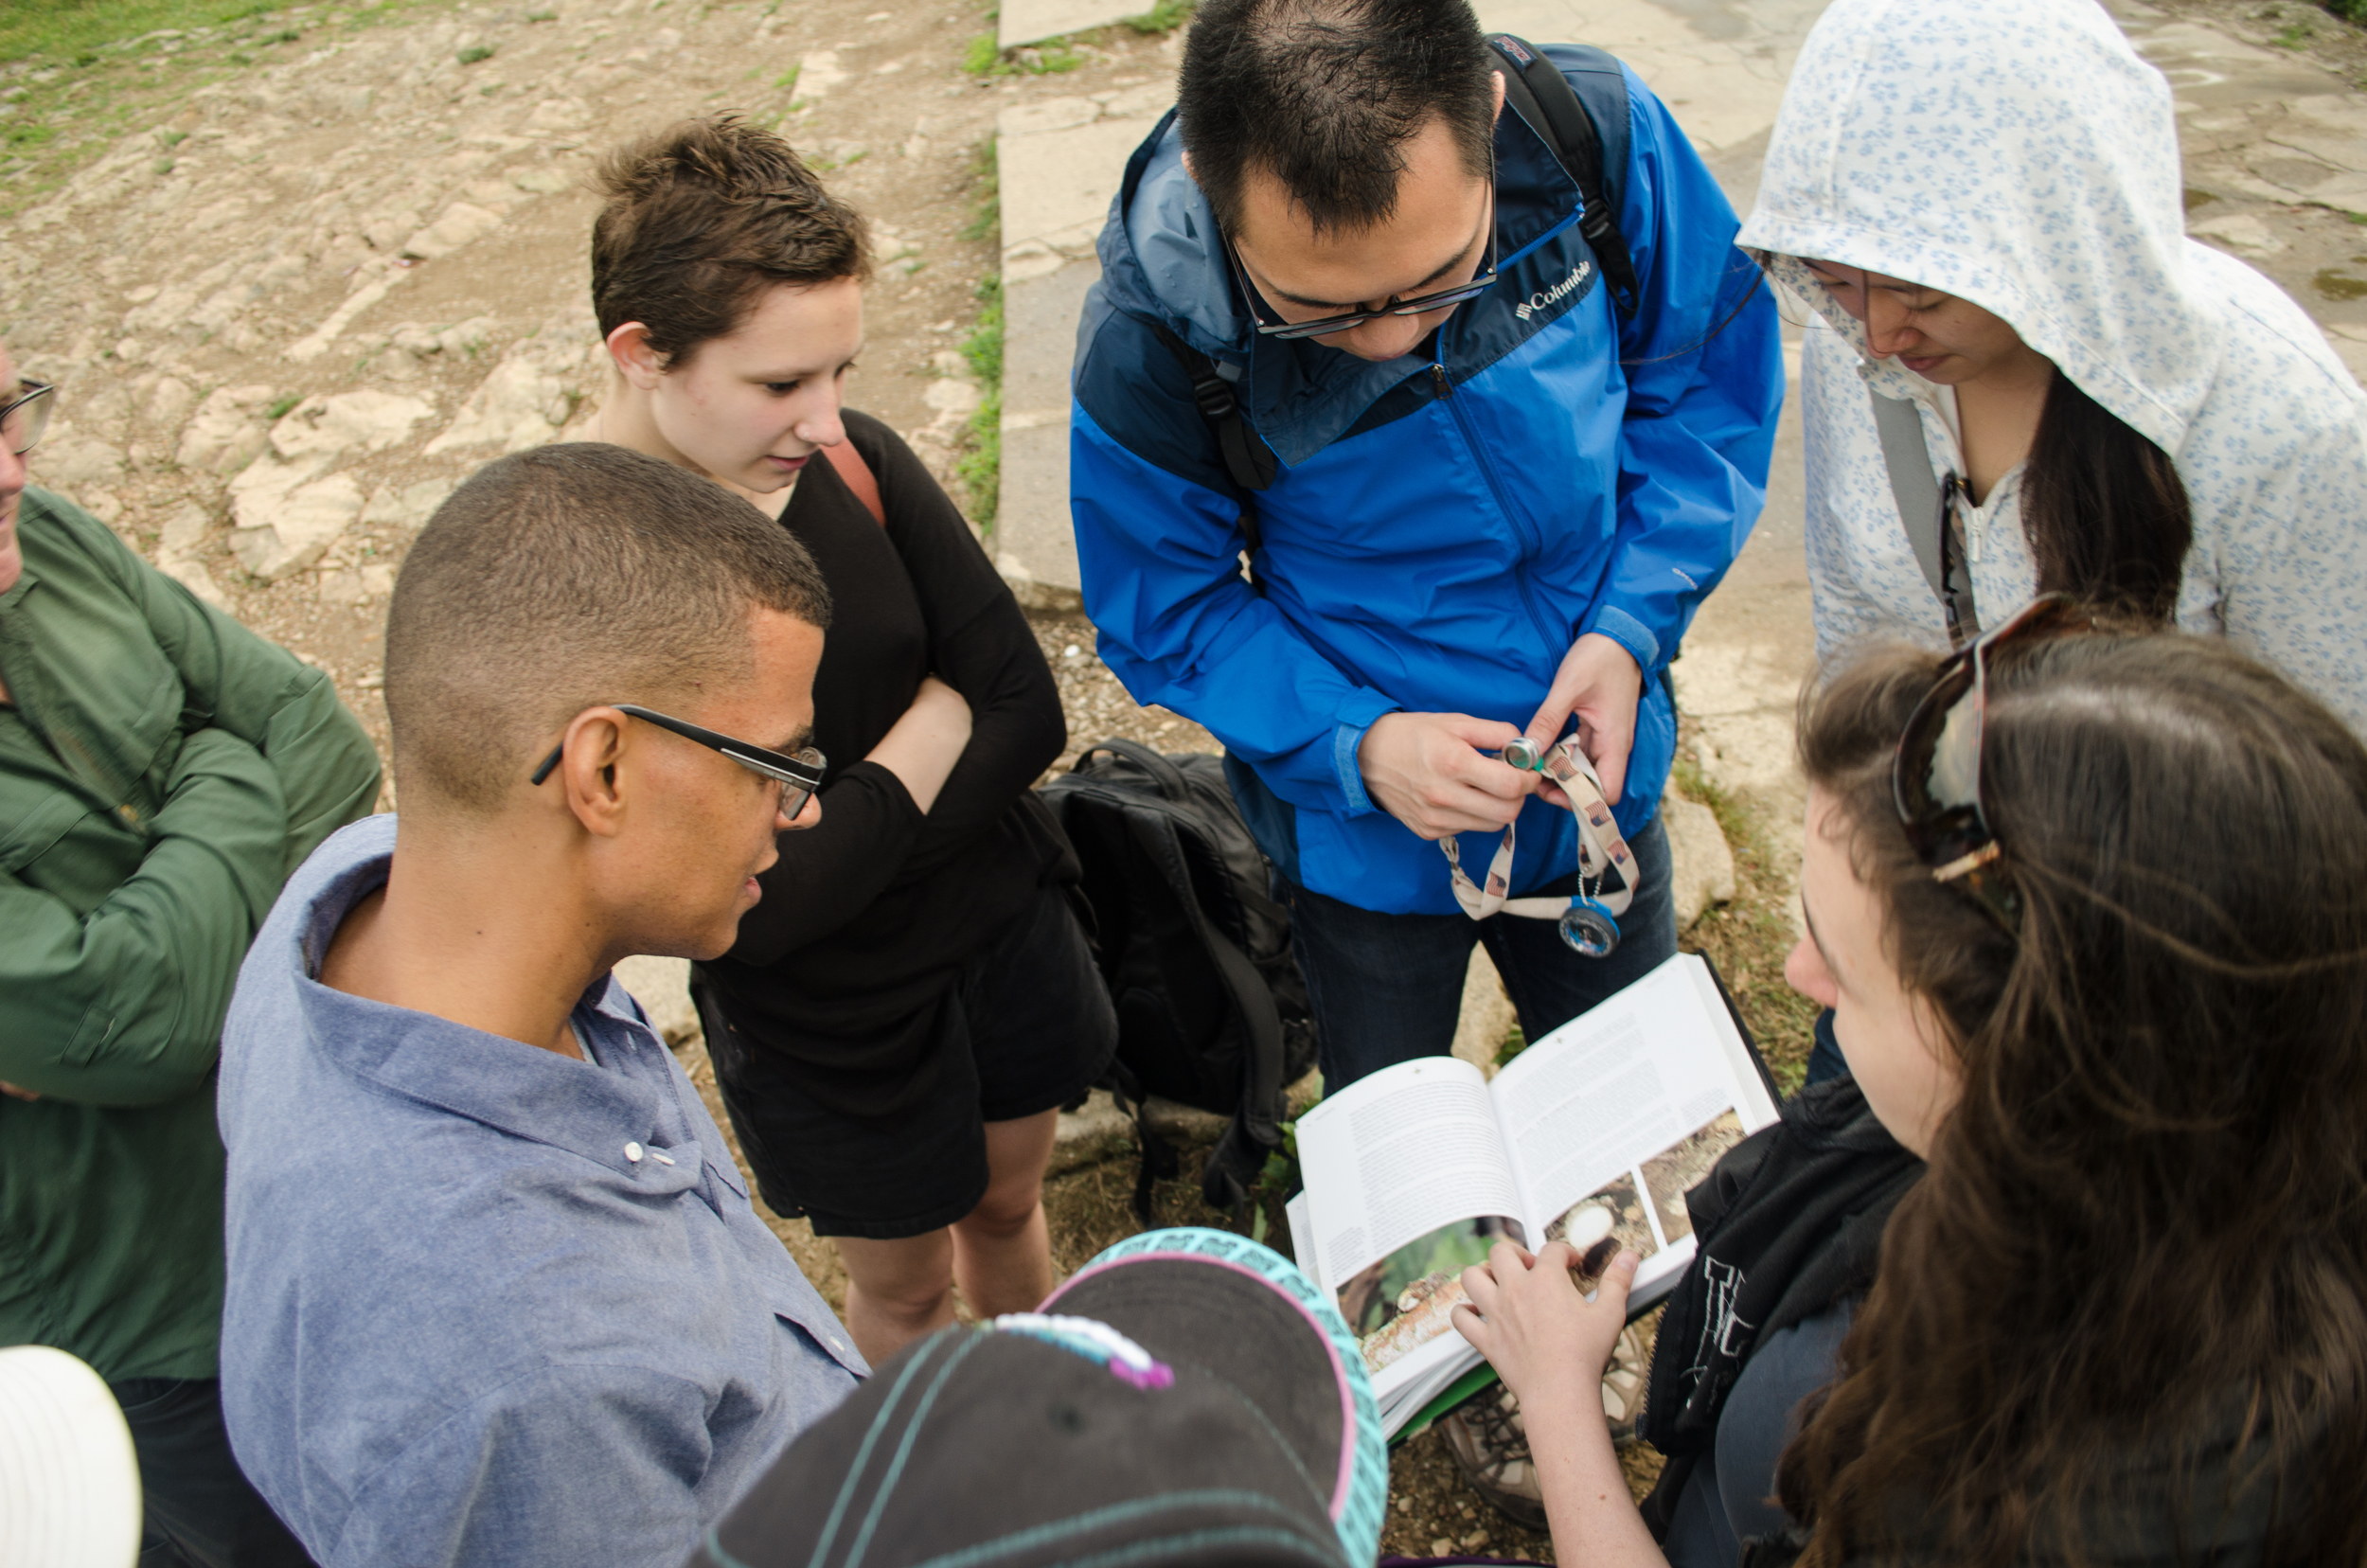 Guided Night Hike to Mount Beacon with arachnologist Dr. Stephanie Loria - July 16